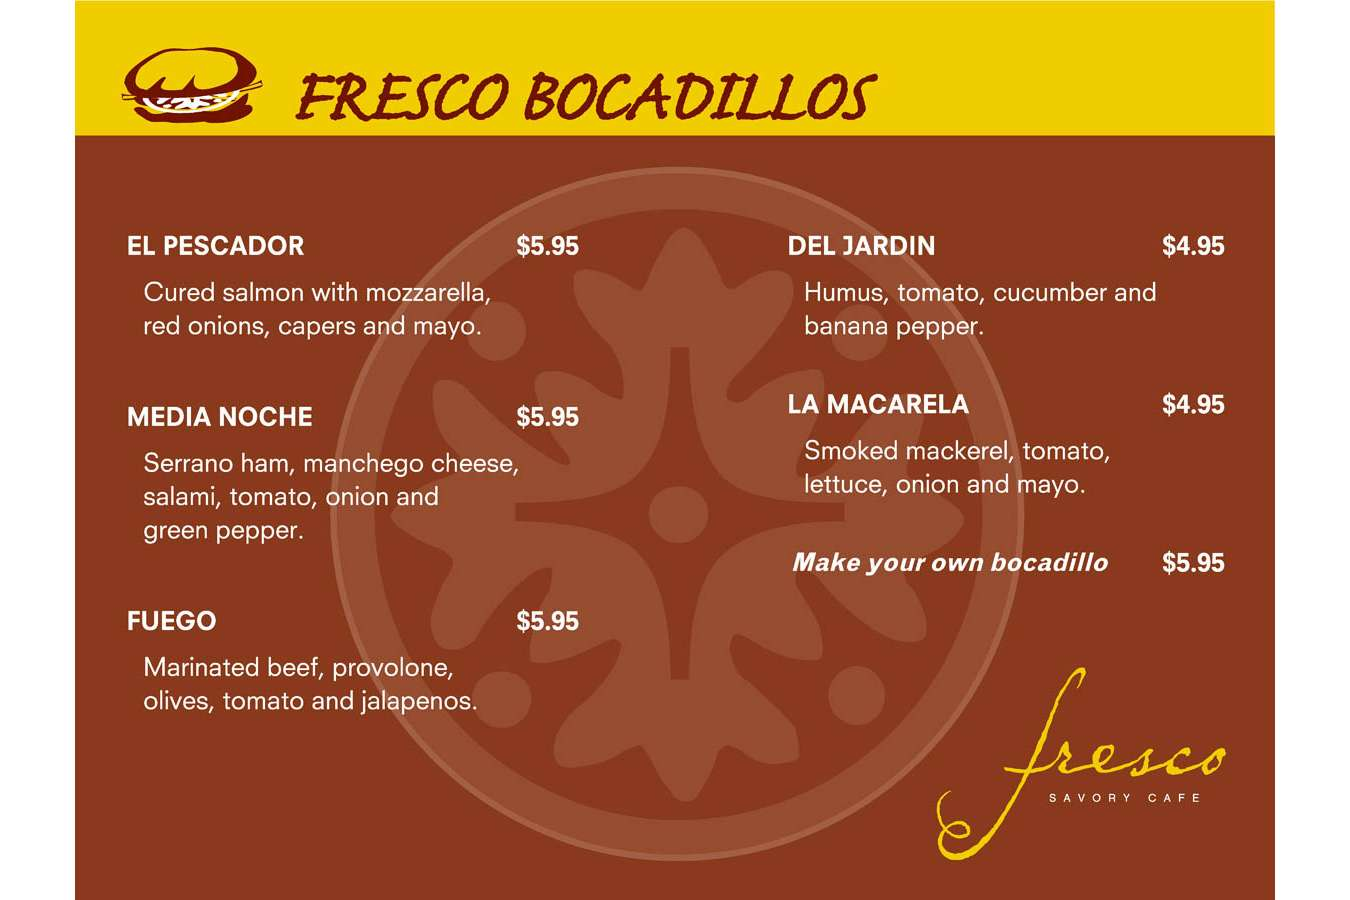 FRES BOCADILLOS : Bocadillos means sandwiches in spanish